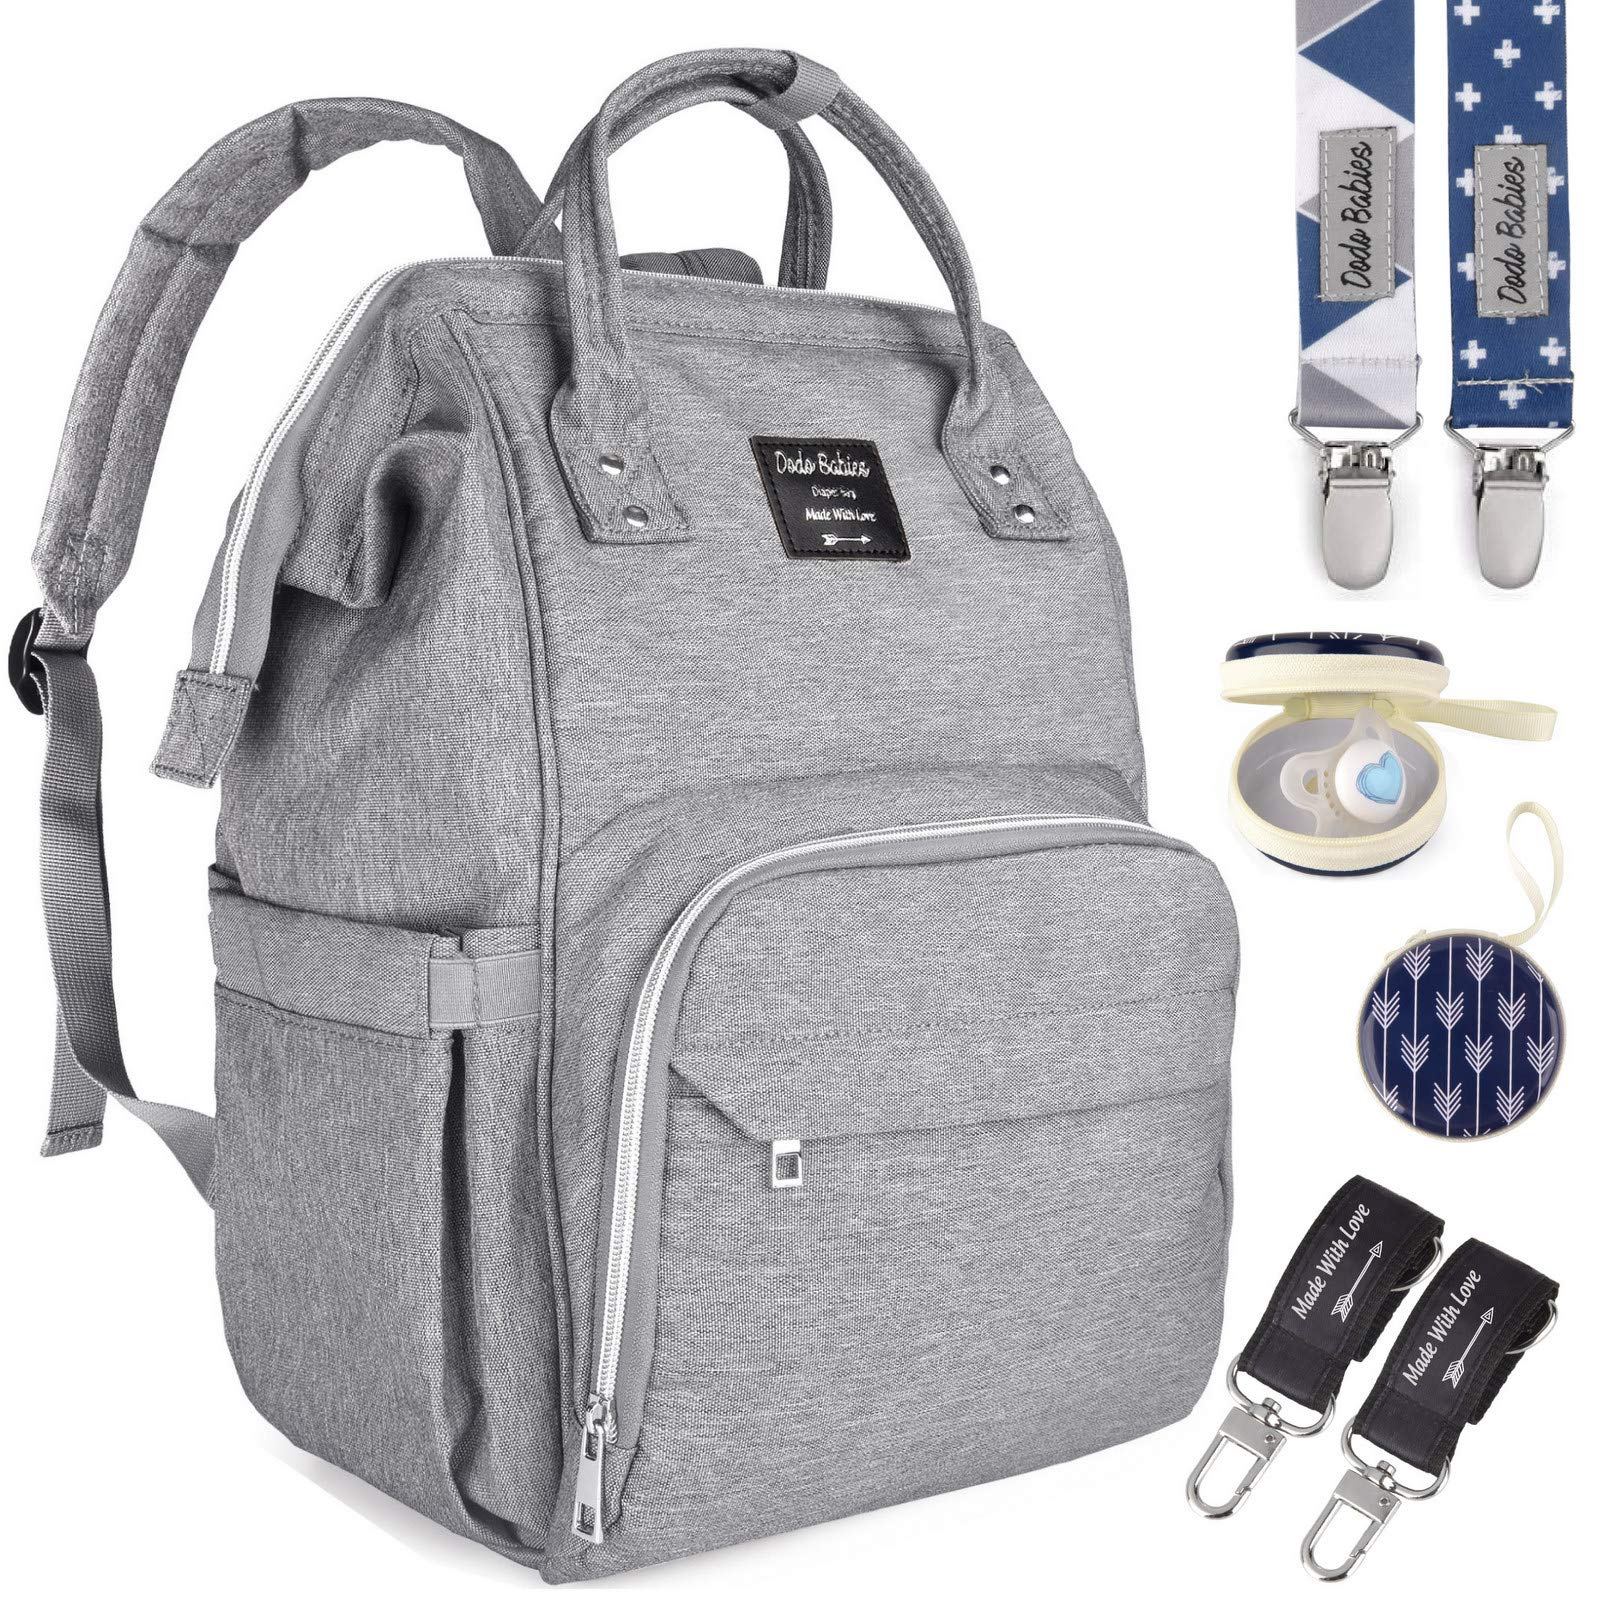 Diaper Bag by Dodo Babies + 2 Pacifier Clips + Pacifier Case, Multi-Function Waterproof Maternity Nappy Bags, Travel Backpack Large Capacity Excellent Baby Shower/Registry Gift by Dodo Baby